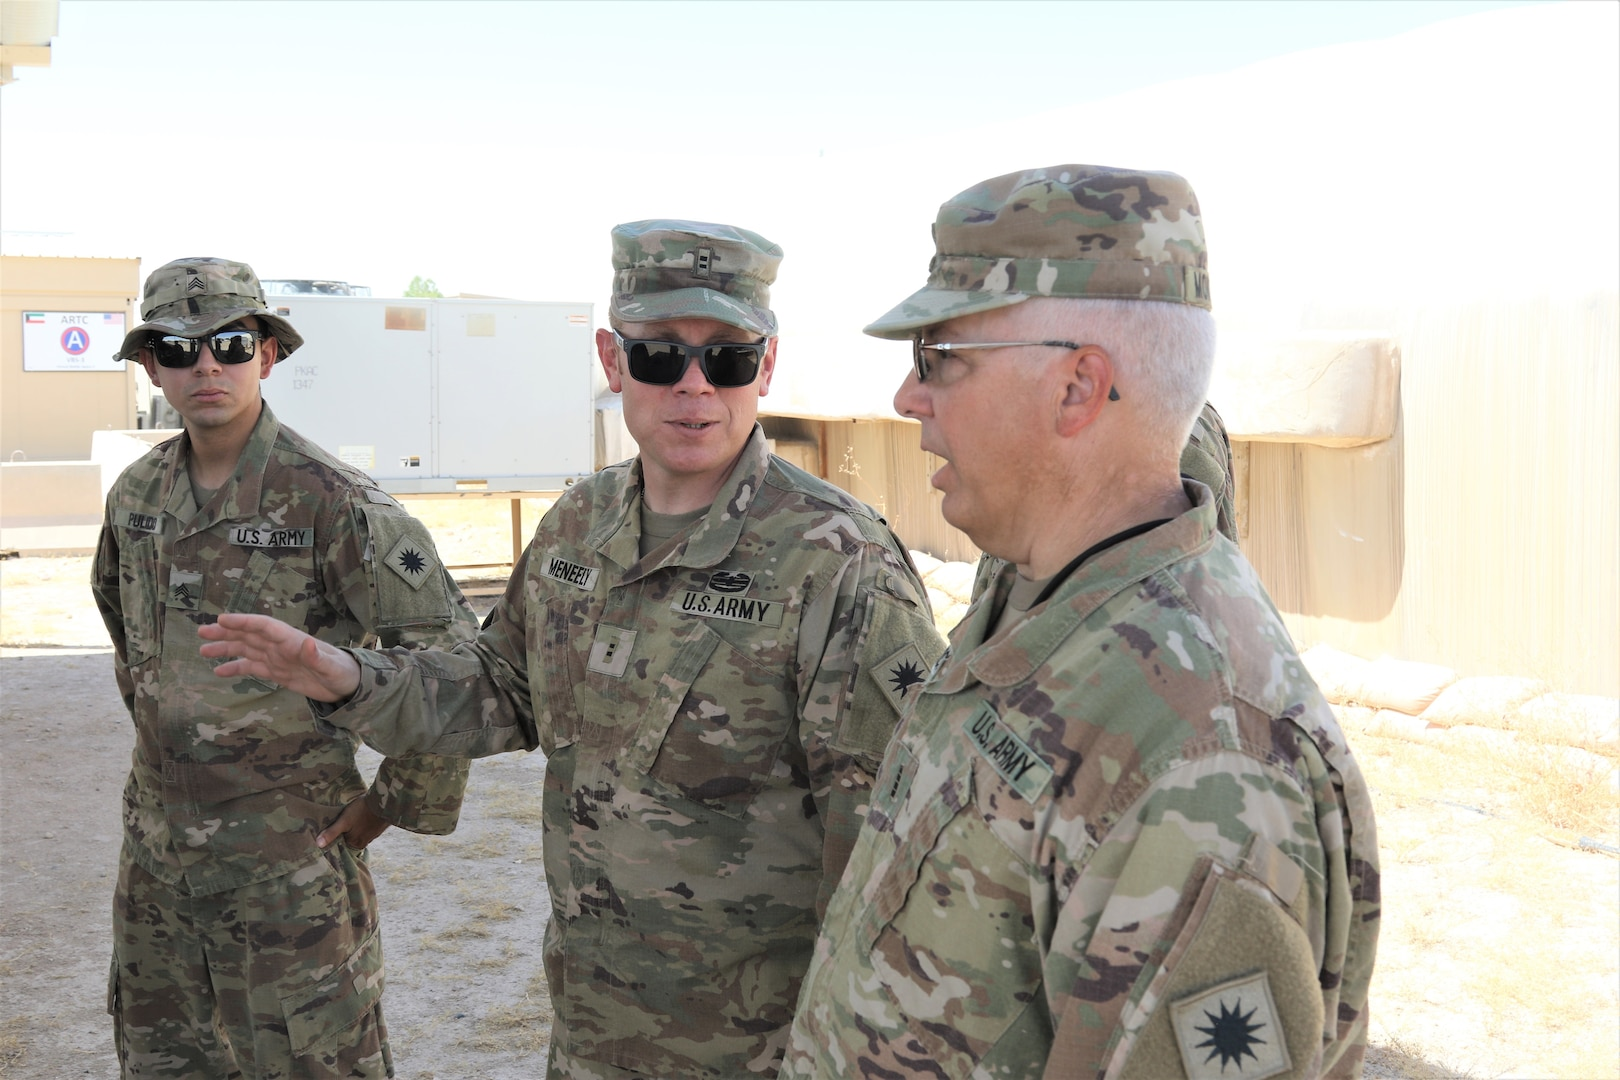 Sgt. Ismael Pulido, electronic warfare NCO, Chief Warrant Officer 2 Anthony Meneely, Chief Warrant Officer 4 Douglas Montgomery discuss Counter Radio-Controlled Improvised Explosive Device Warfare system training at Camp Buehring, Kuwait. Pulido, Meneely and Montgomery are the Task Force Phoenix Cyberspace Electromagnetic Activities cell.